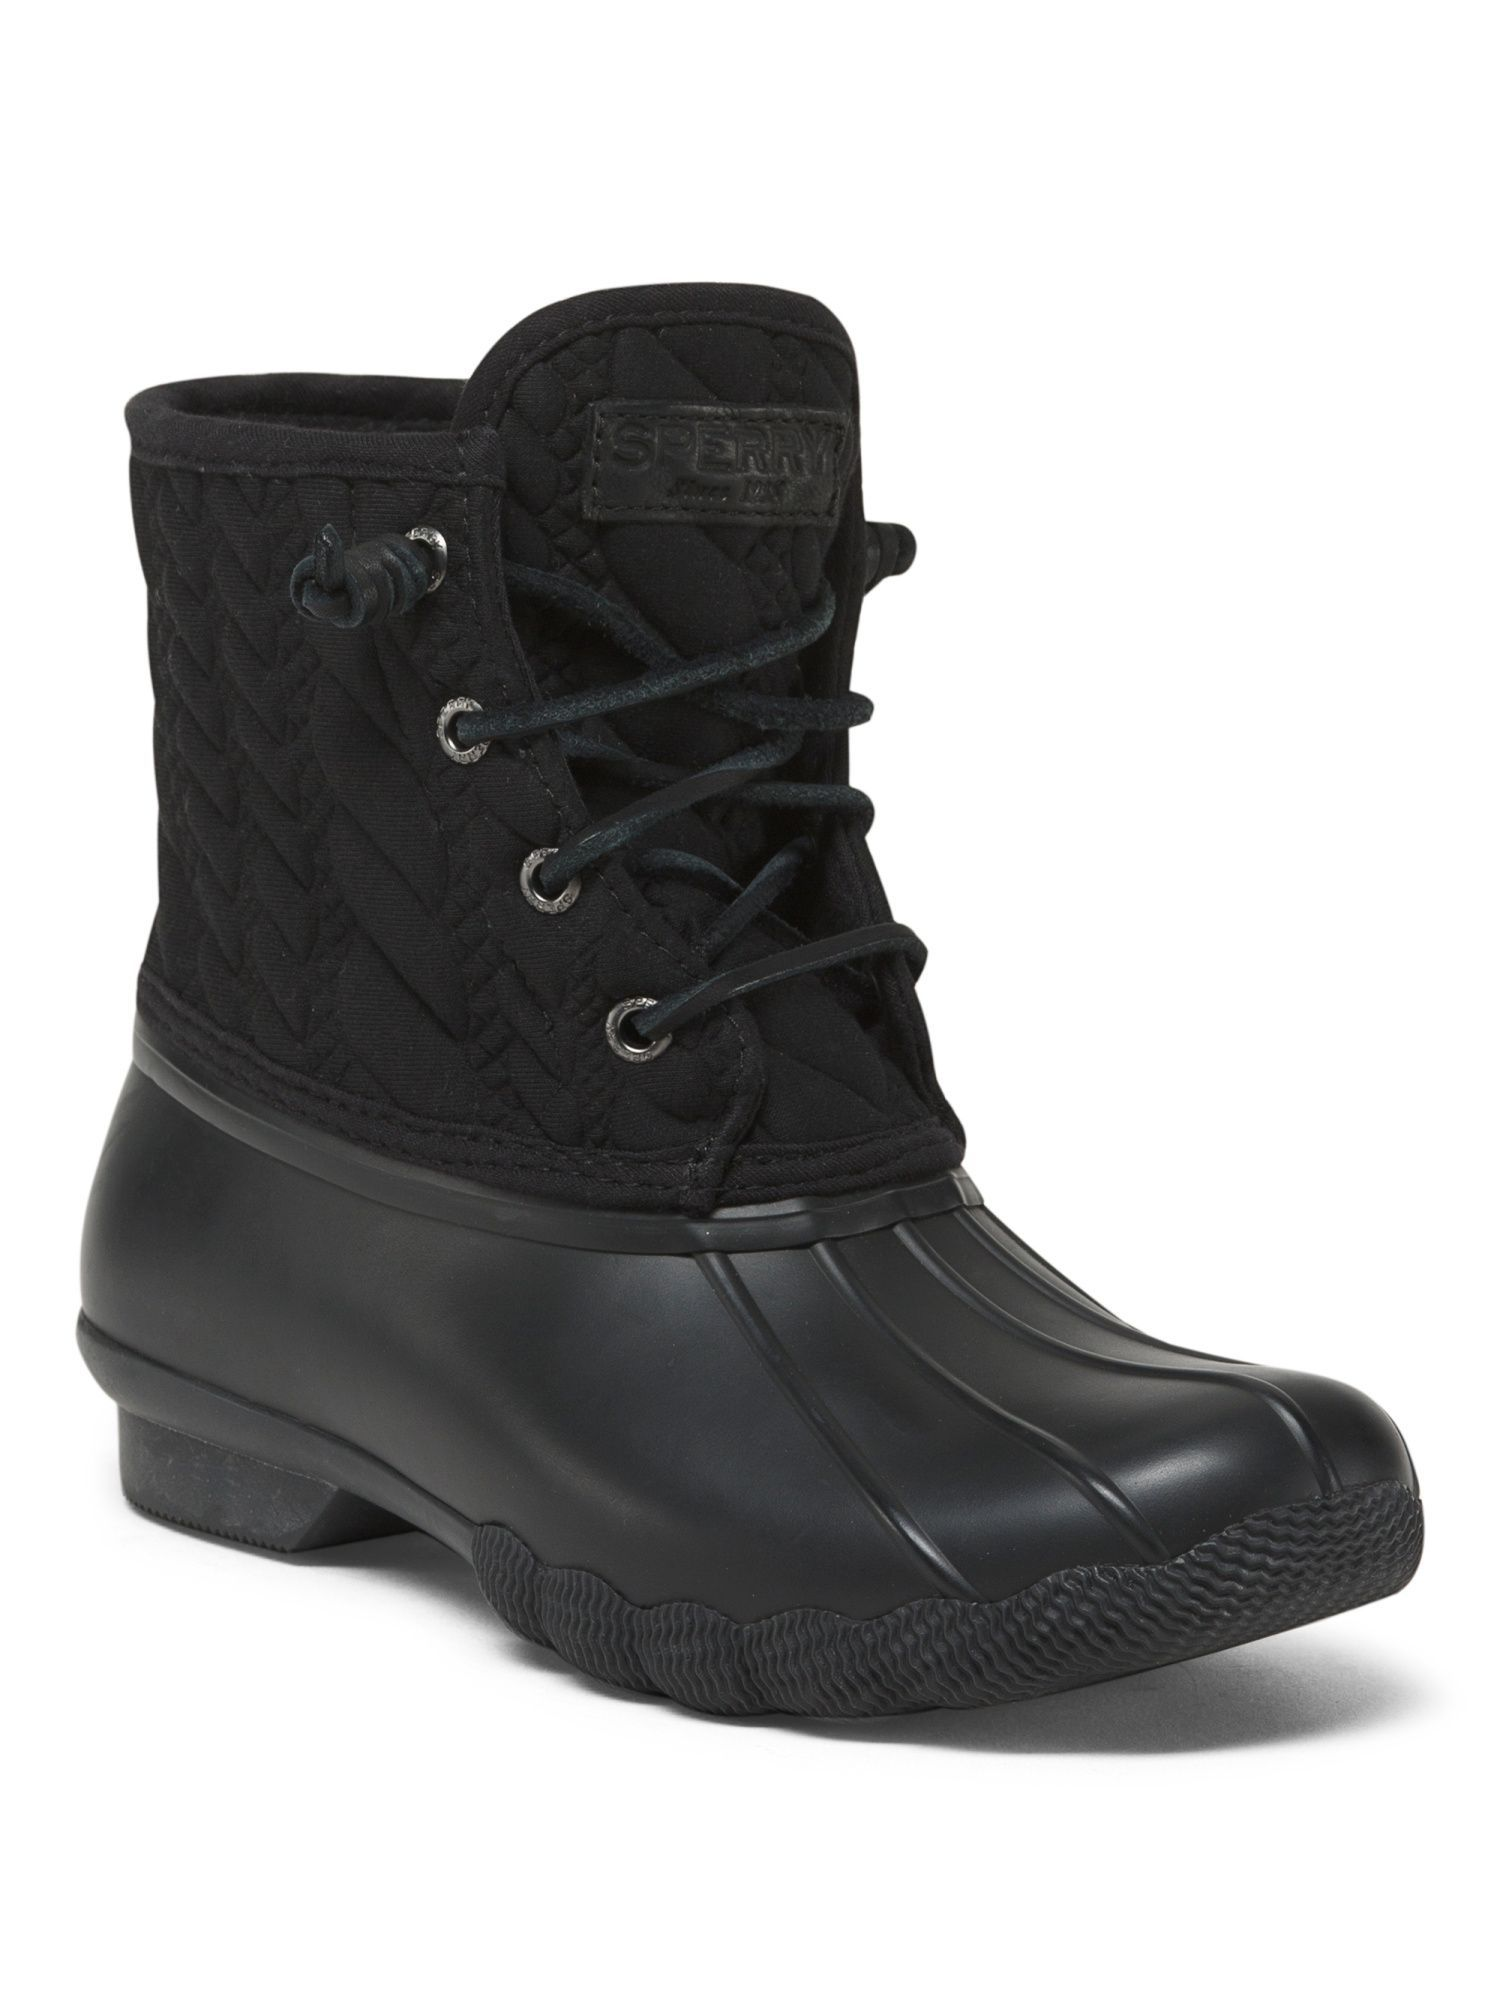 ab156bf3435 Waterproof Duck Boots | Products | Boots, Duck boots, Shoe boots